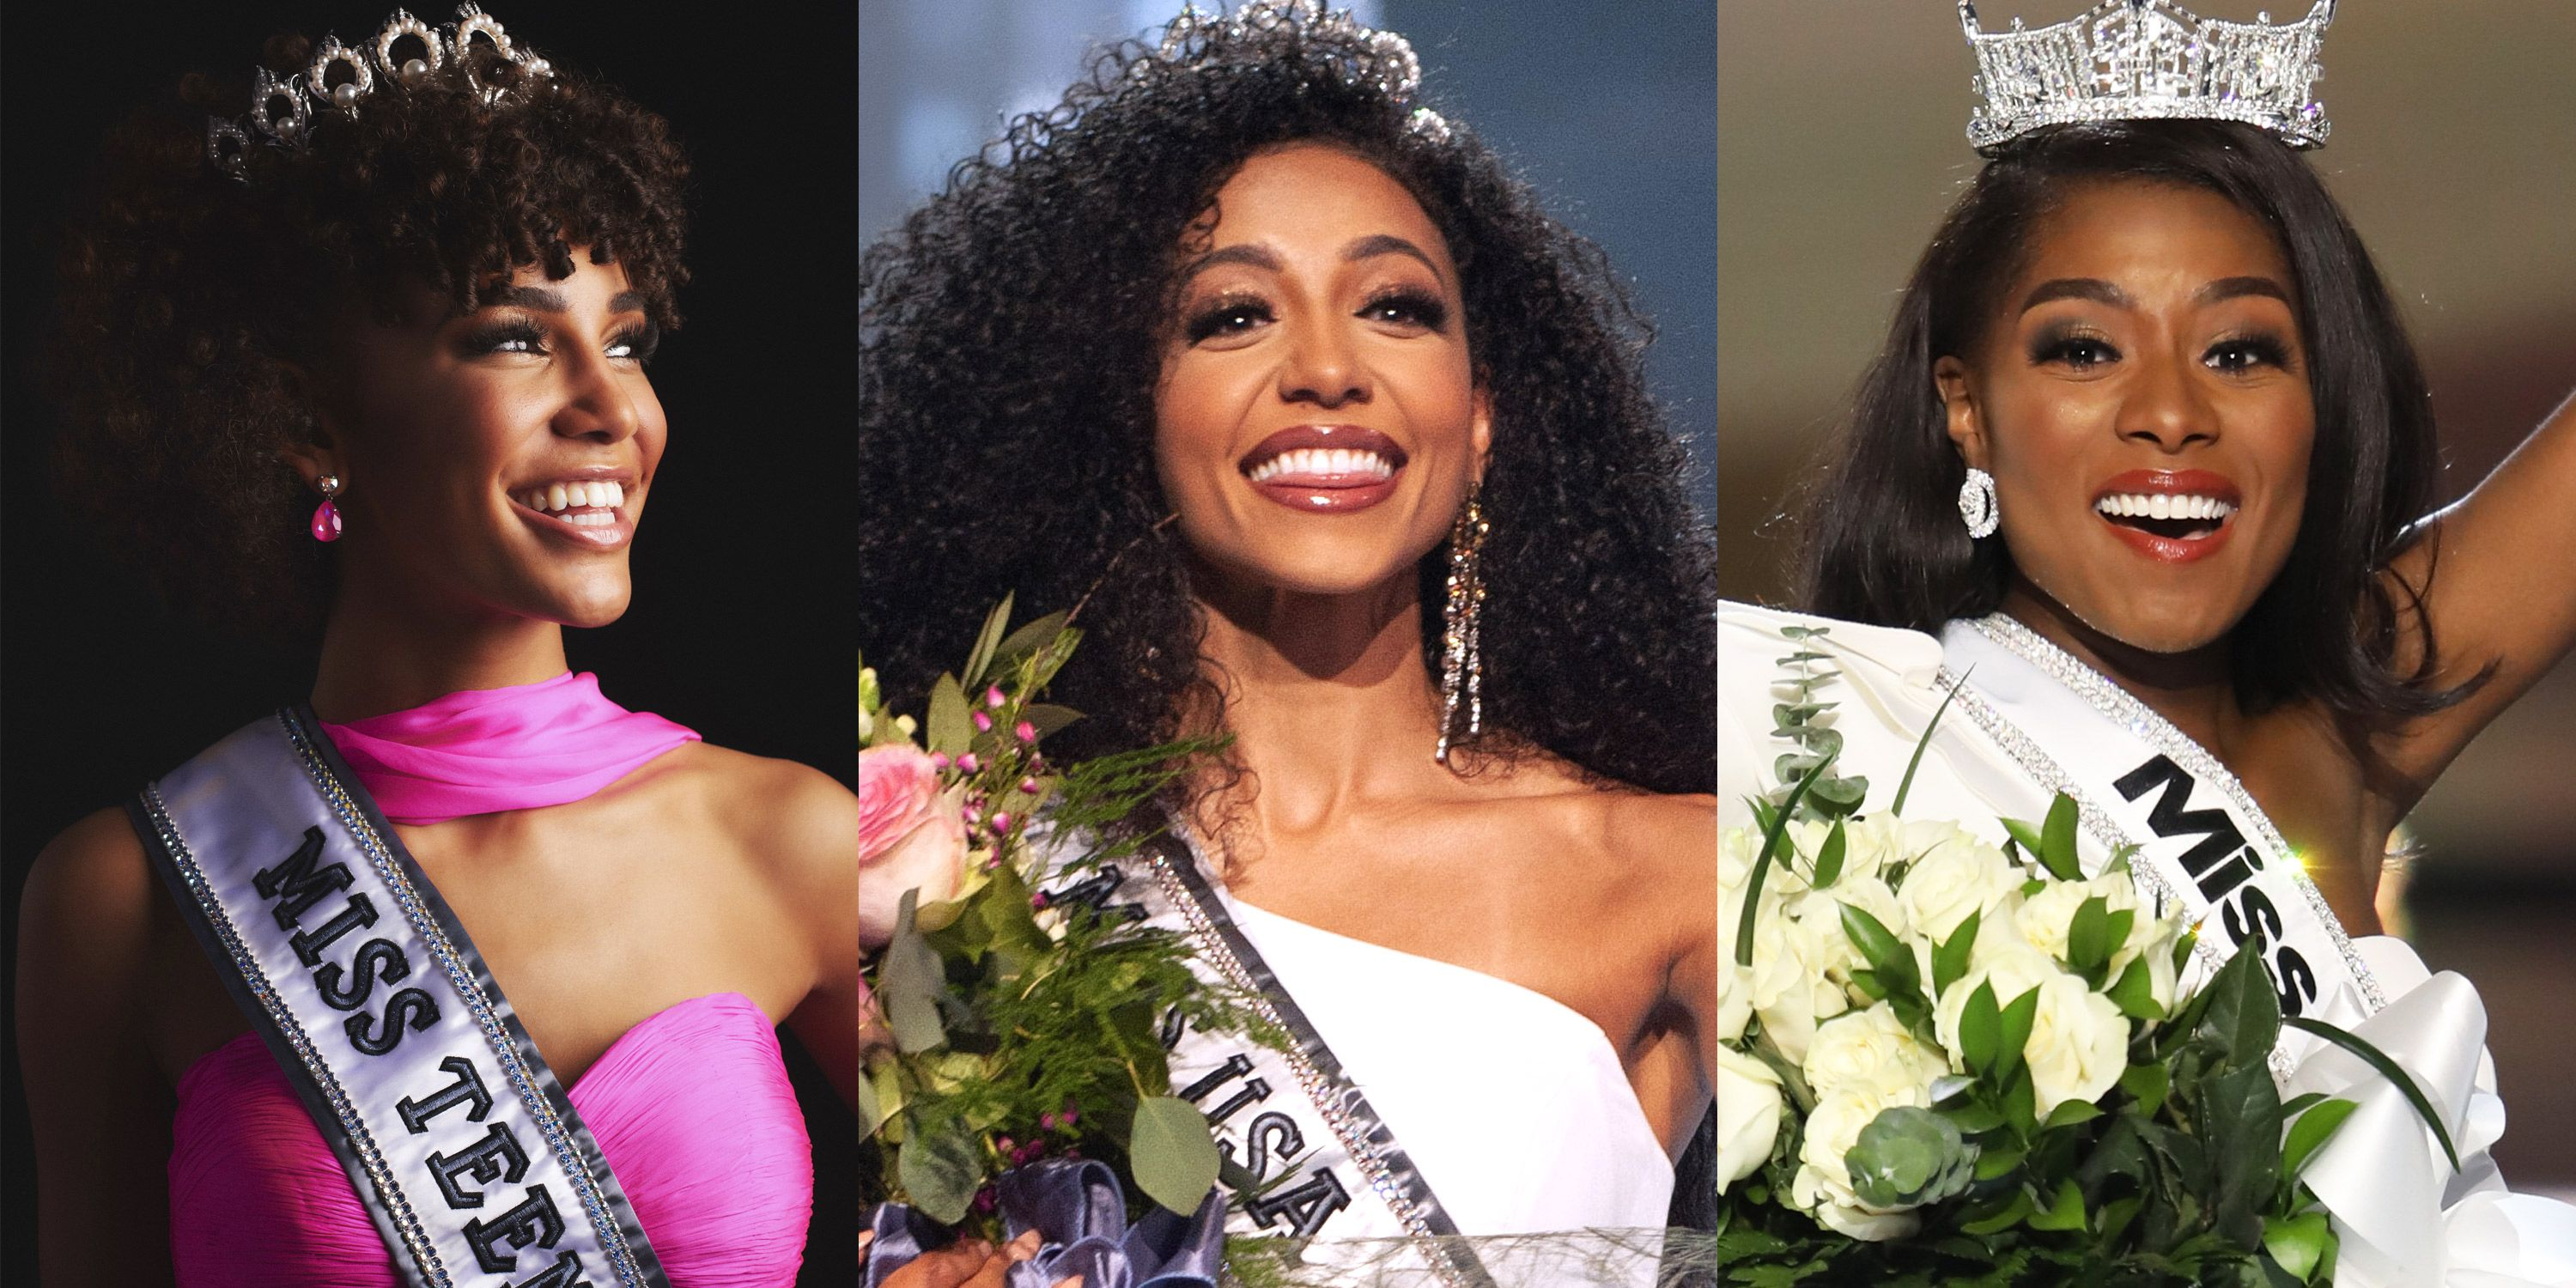 All Three Major Pageant Titles Belong to Black Women for the First Time in History